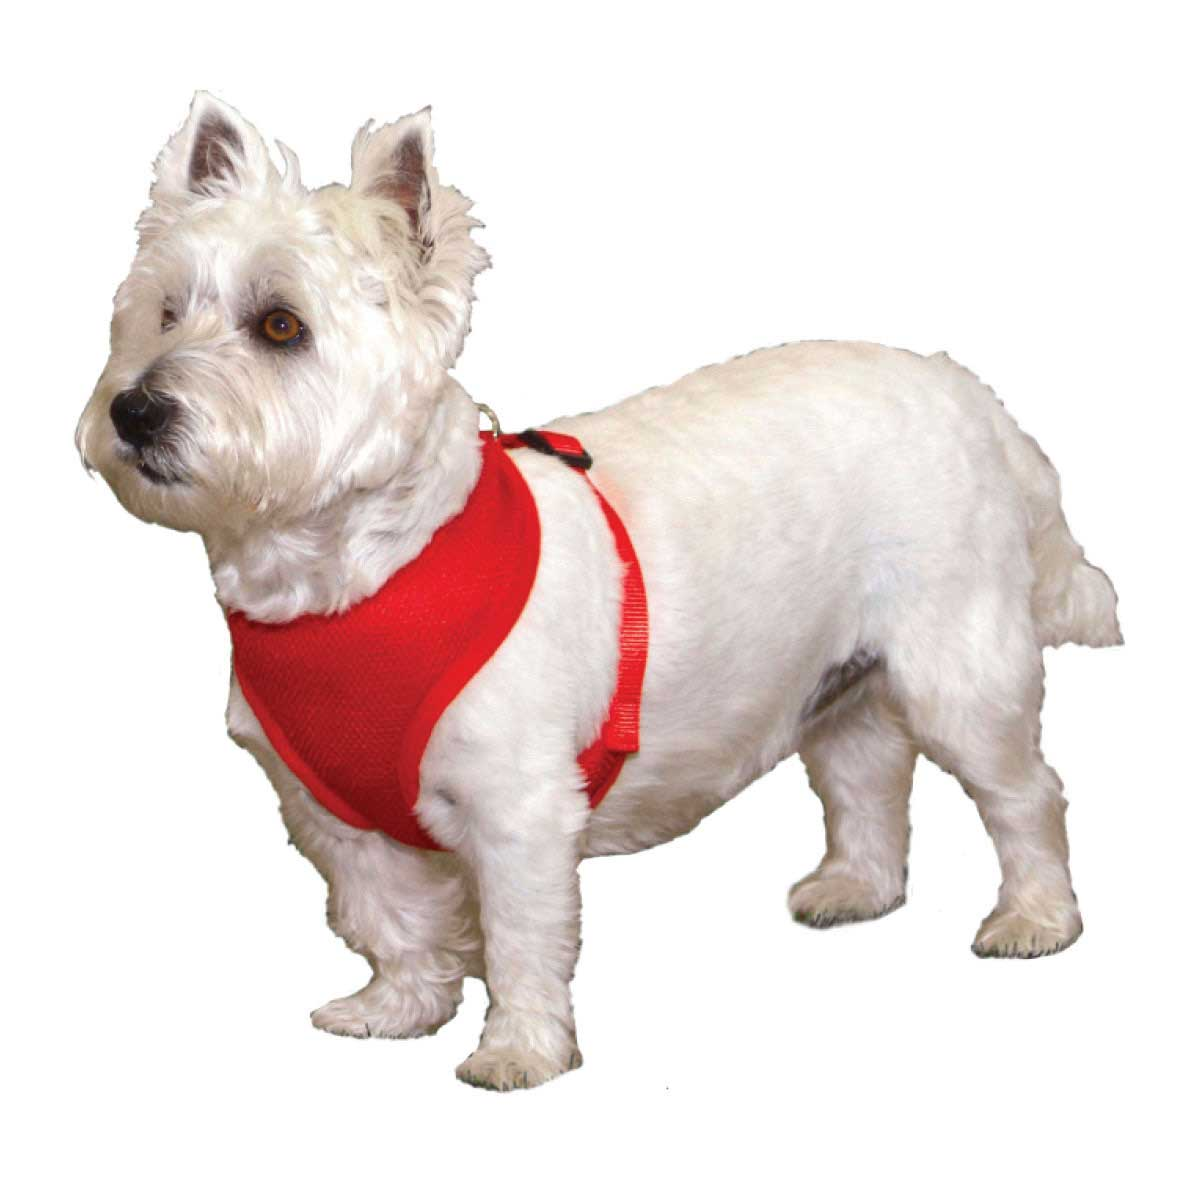 Coastal Comfort Soft Nylon Harness XX-Small 3/8""